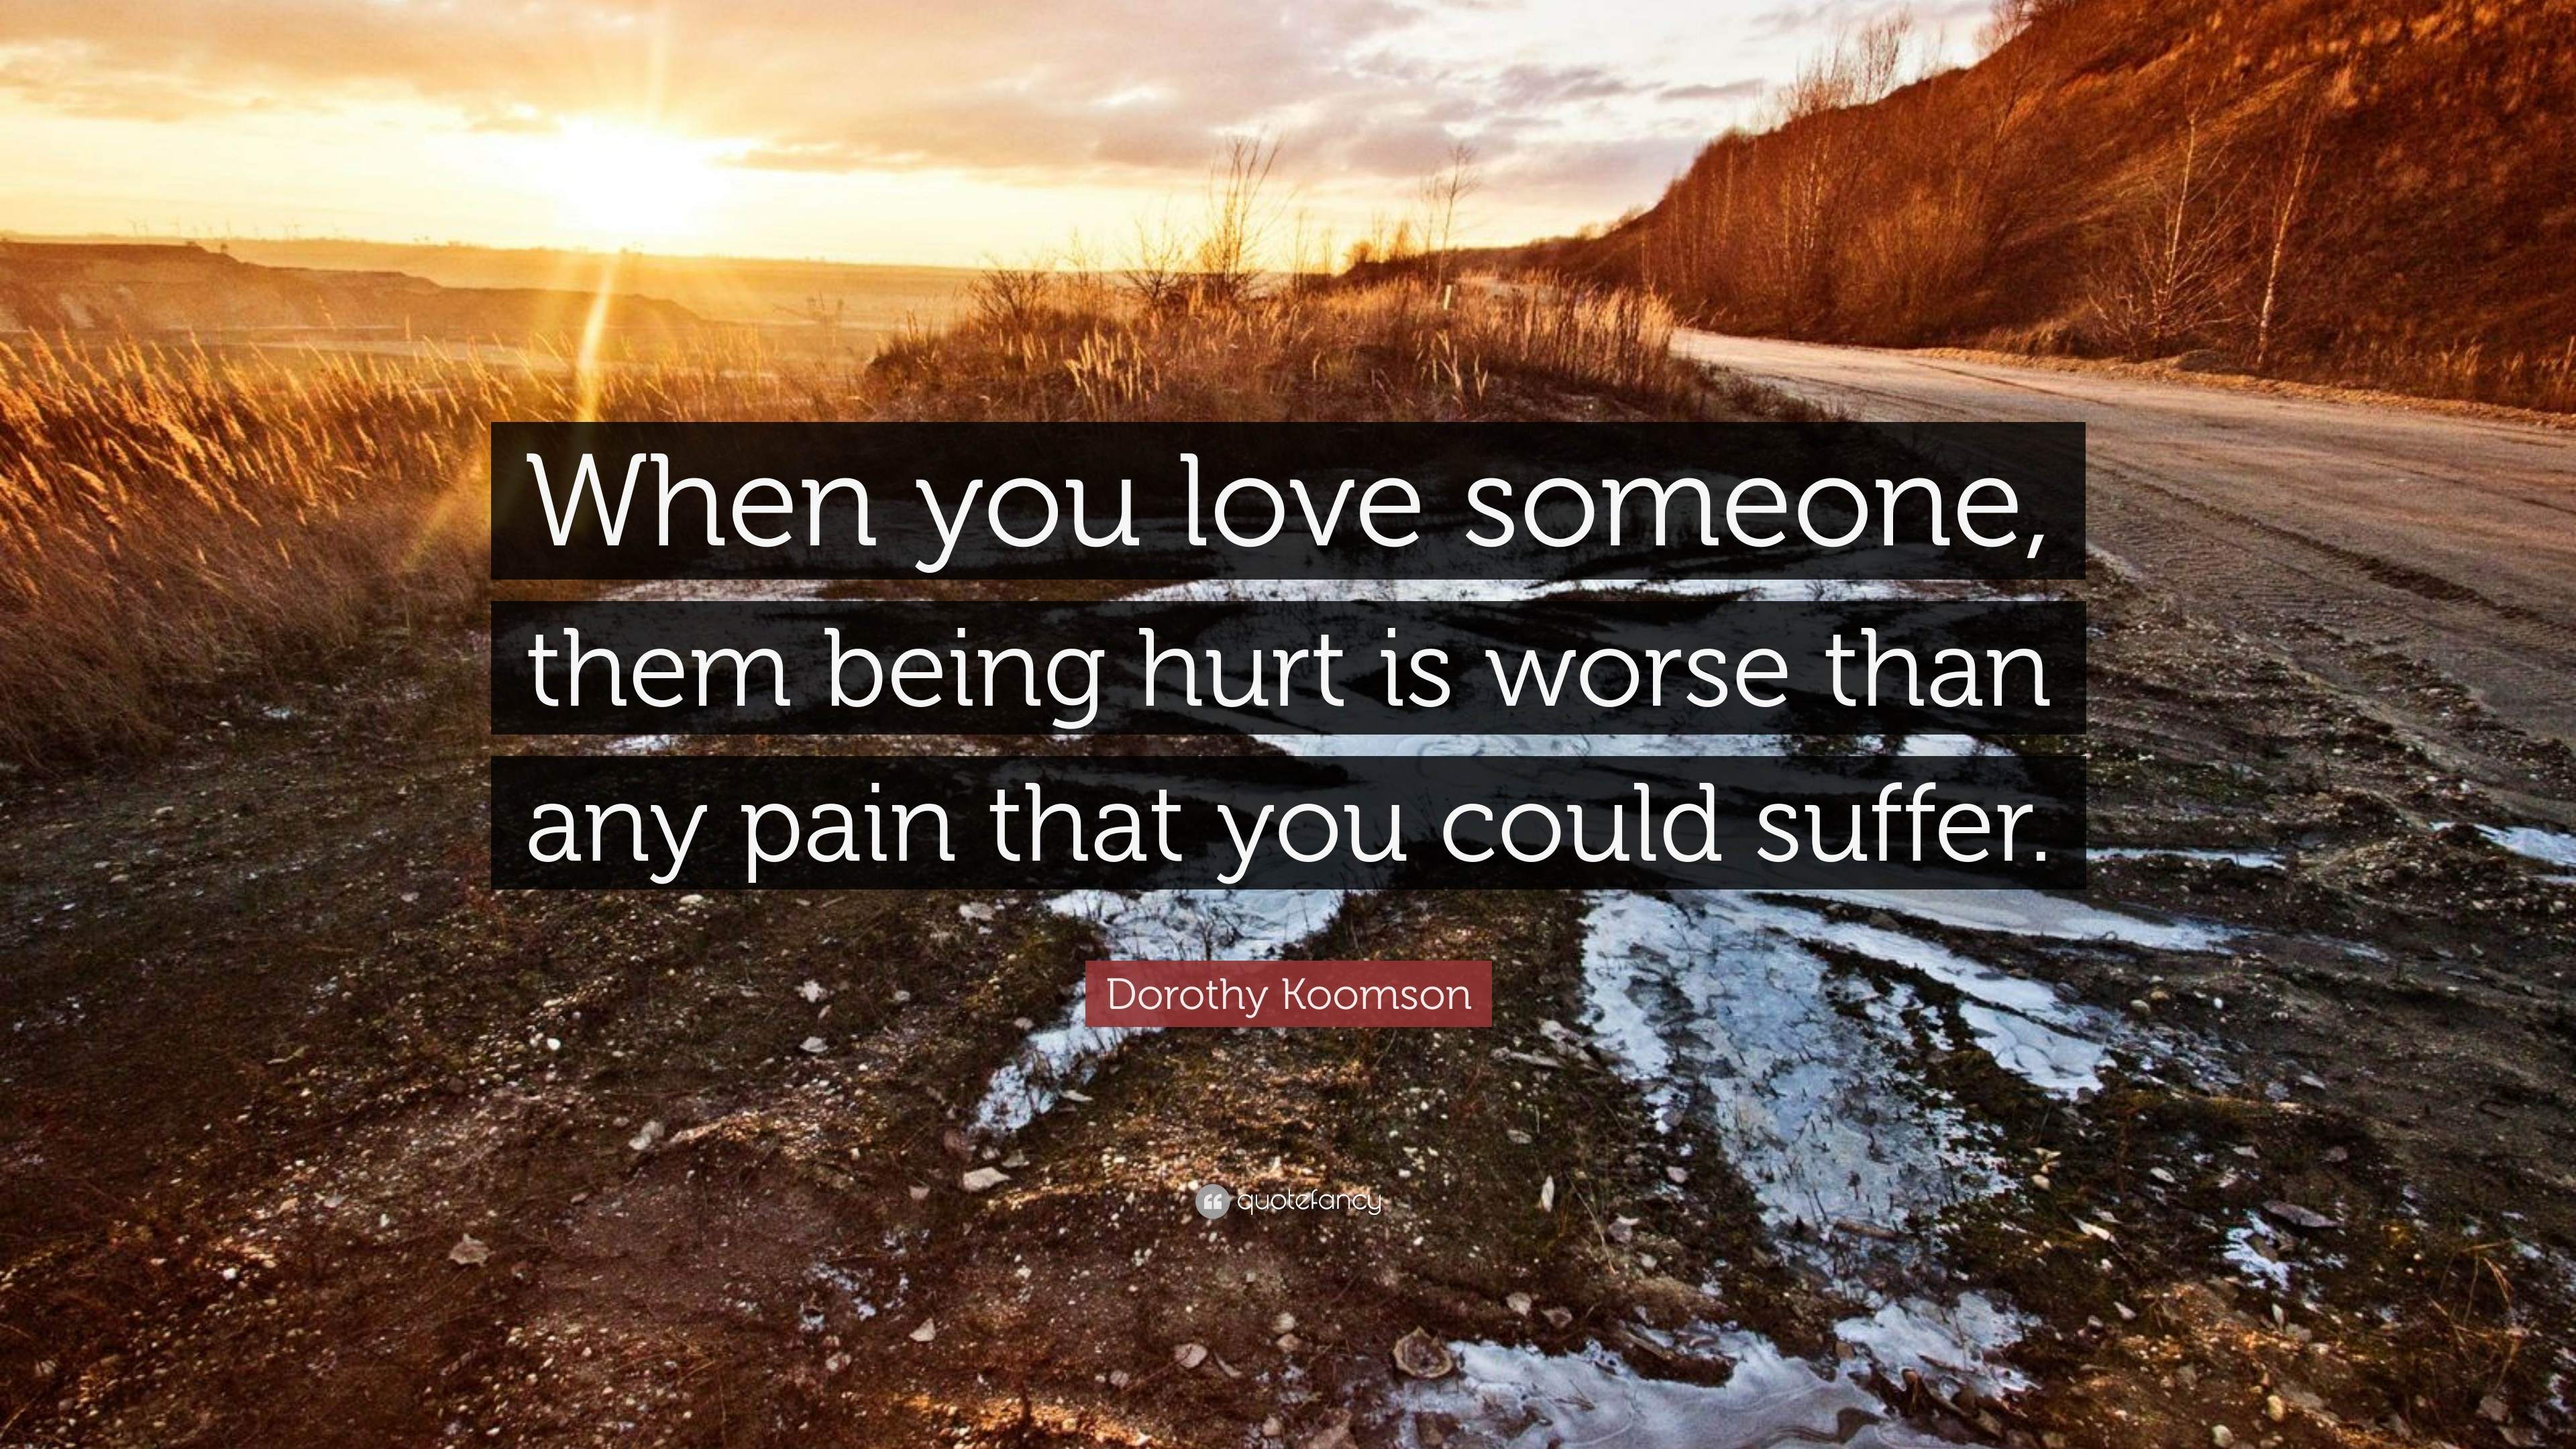 Quotes About Being Hurt by someone You Love   Thousands of